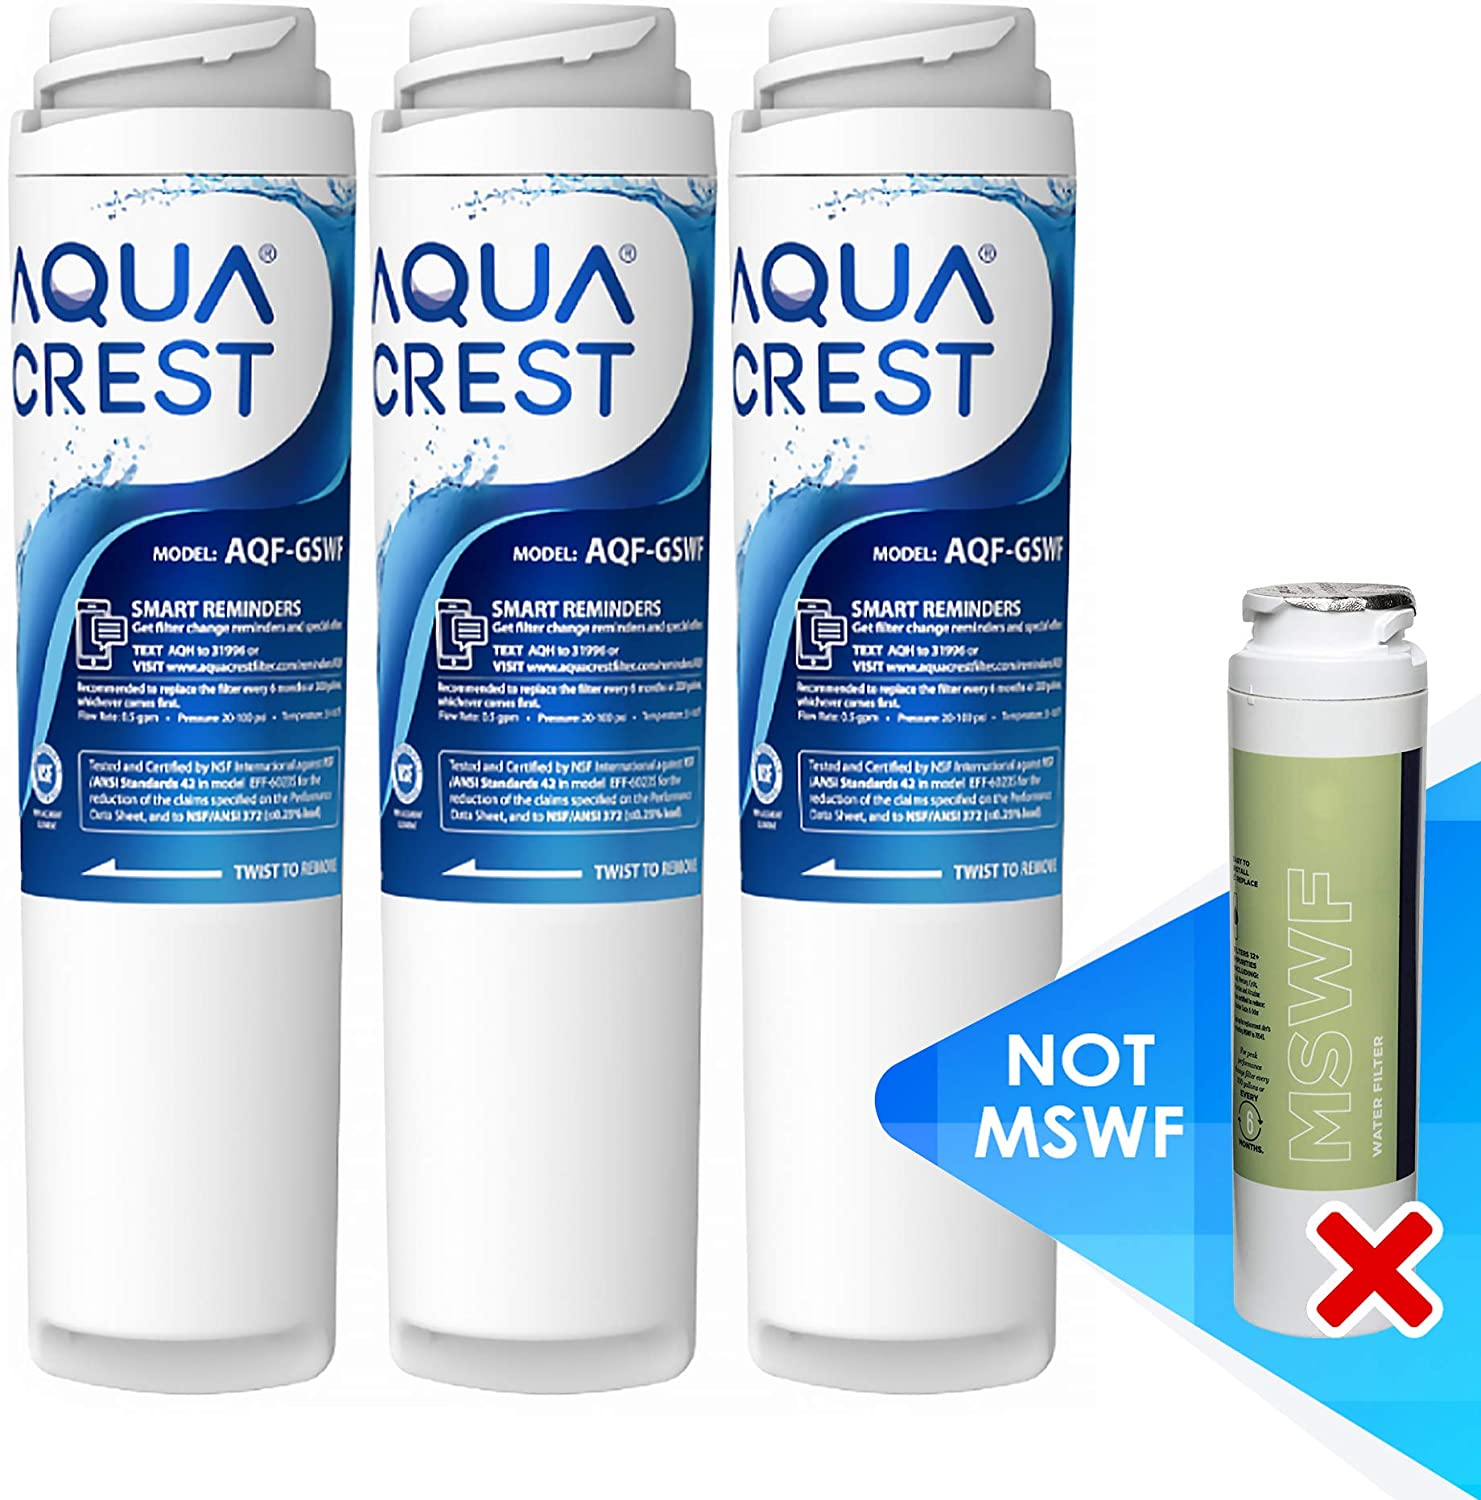 AQUACREST GSWF Refrigerator Water Filter, Compatible with GE GSWF SmartWater 238C2334P001, Kenmore 46-9914, 469914, 9914 (Pack of 3, Packing May Vary)